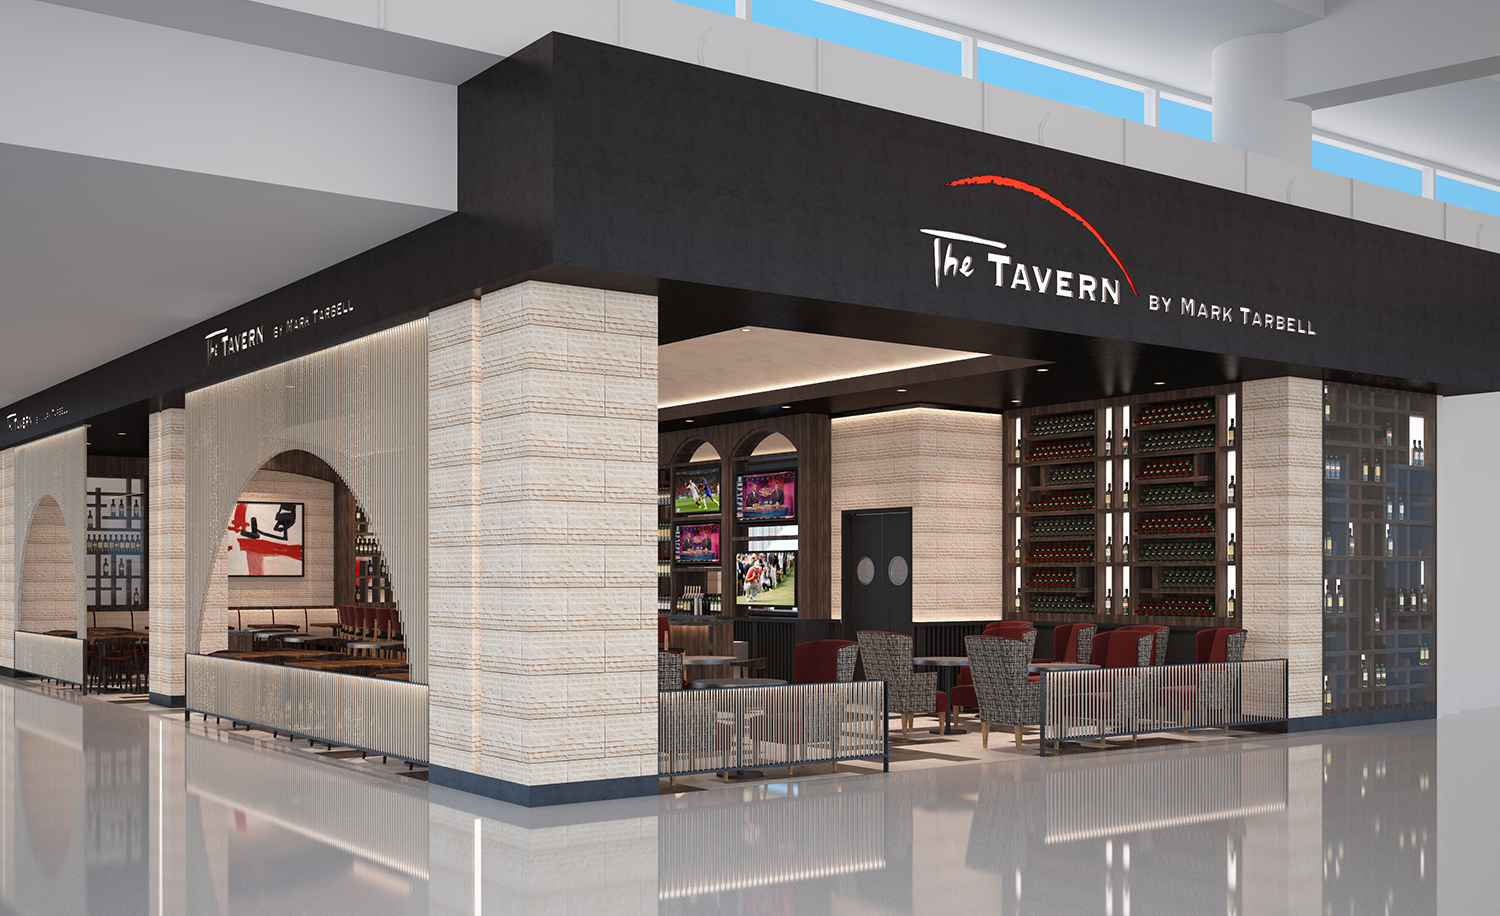 The Tavern by Mark Tarbell - Phoenix Sky Harbor Terminal 3